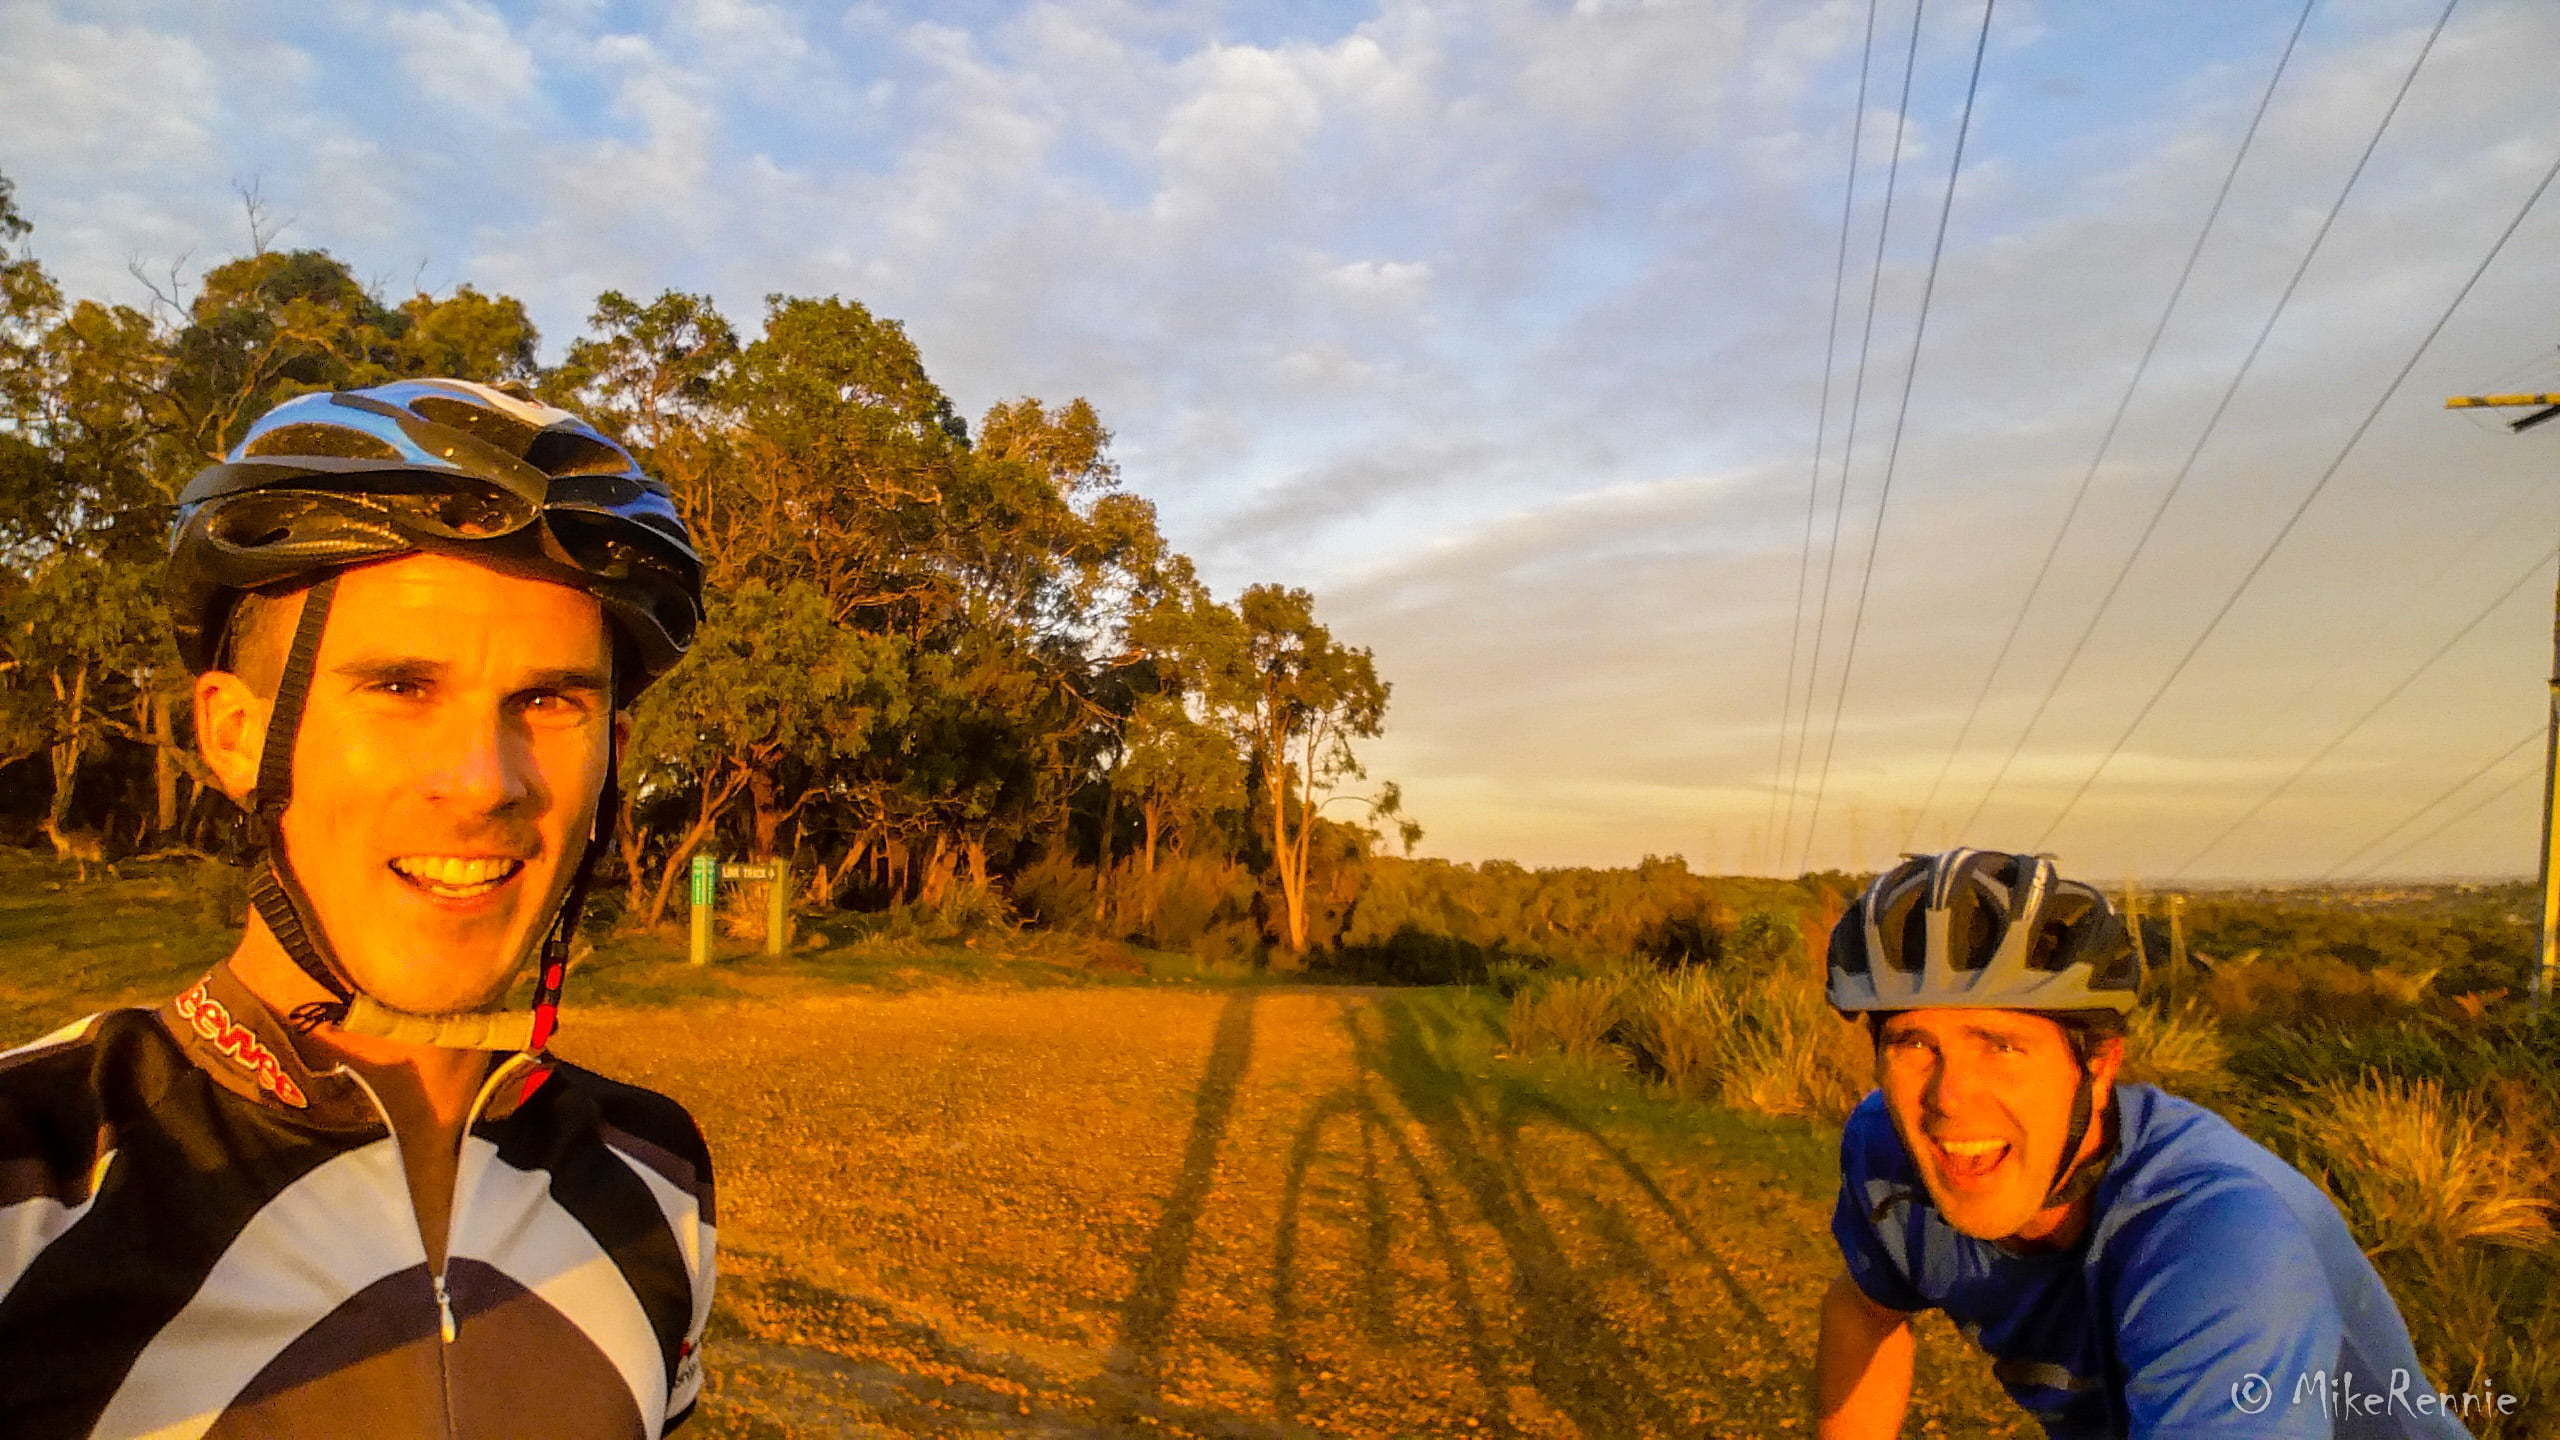 Mike Rennie and Gavin Burren basking in golden light while mountain biking at Churchill National Park during sunset. Photo taken on North Boundary Track atop a hill with 360-degree views of Melbourne by Mike Rennie on Friday 15 May 2016.